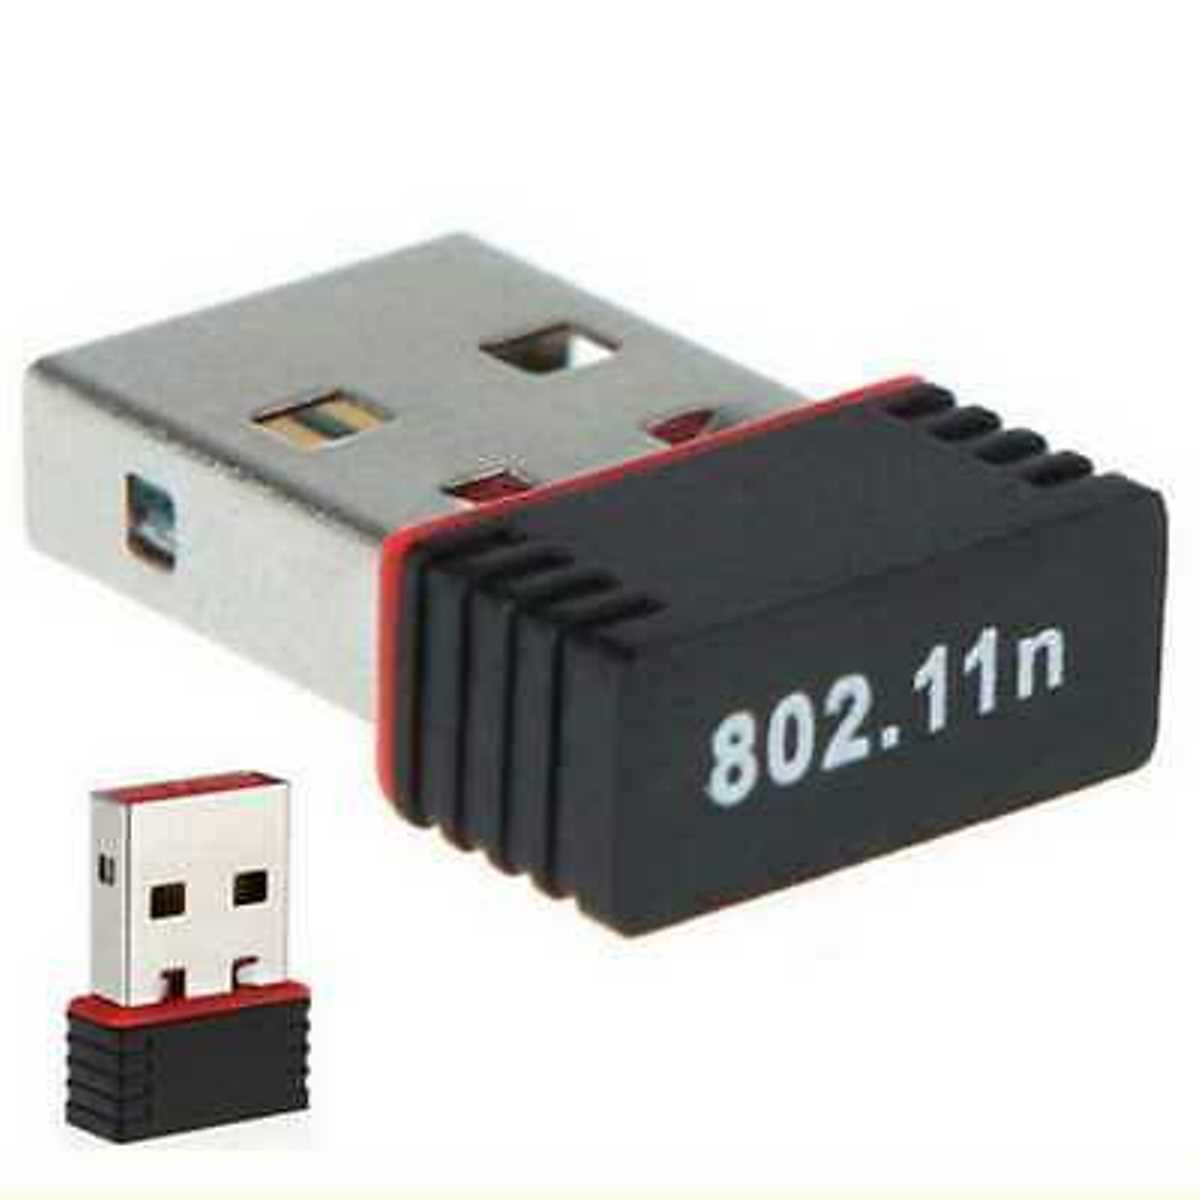 Receptor Adaptador 950 Mbps Usb Wireless Nano Wifi Sem Fio